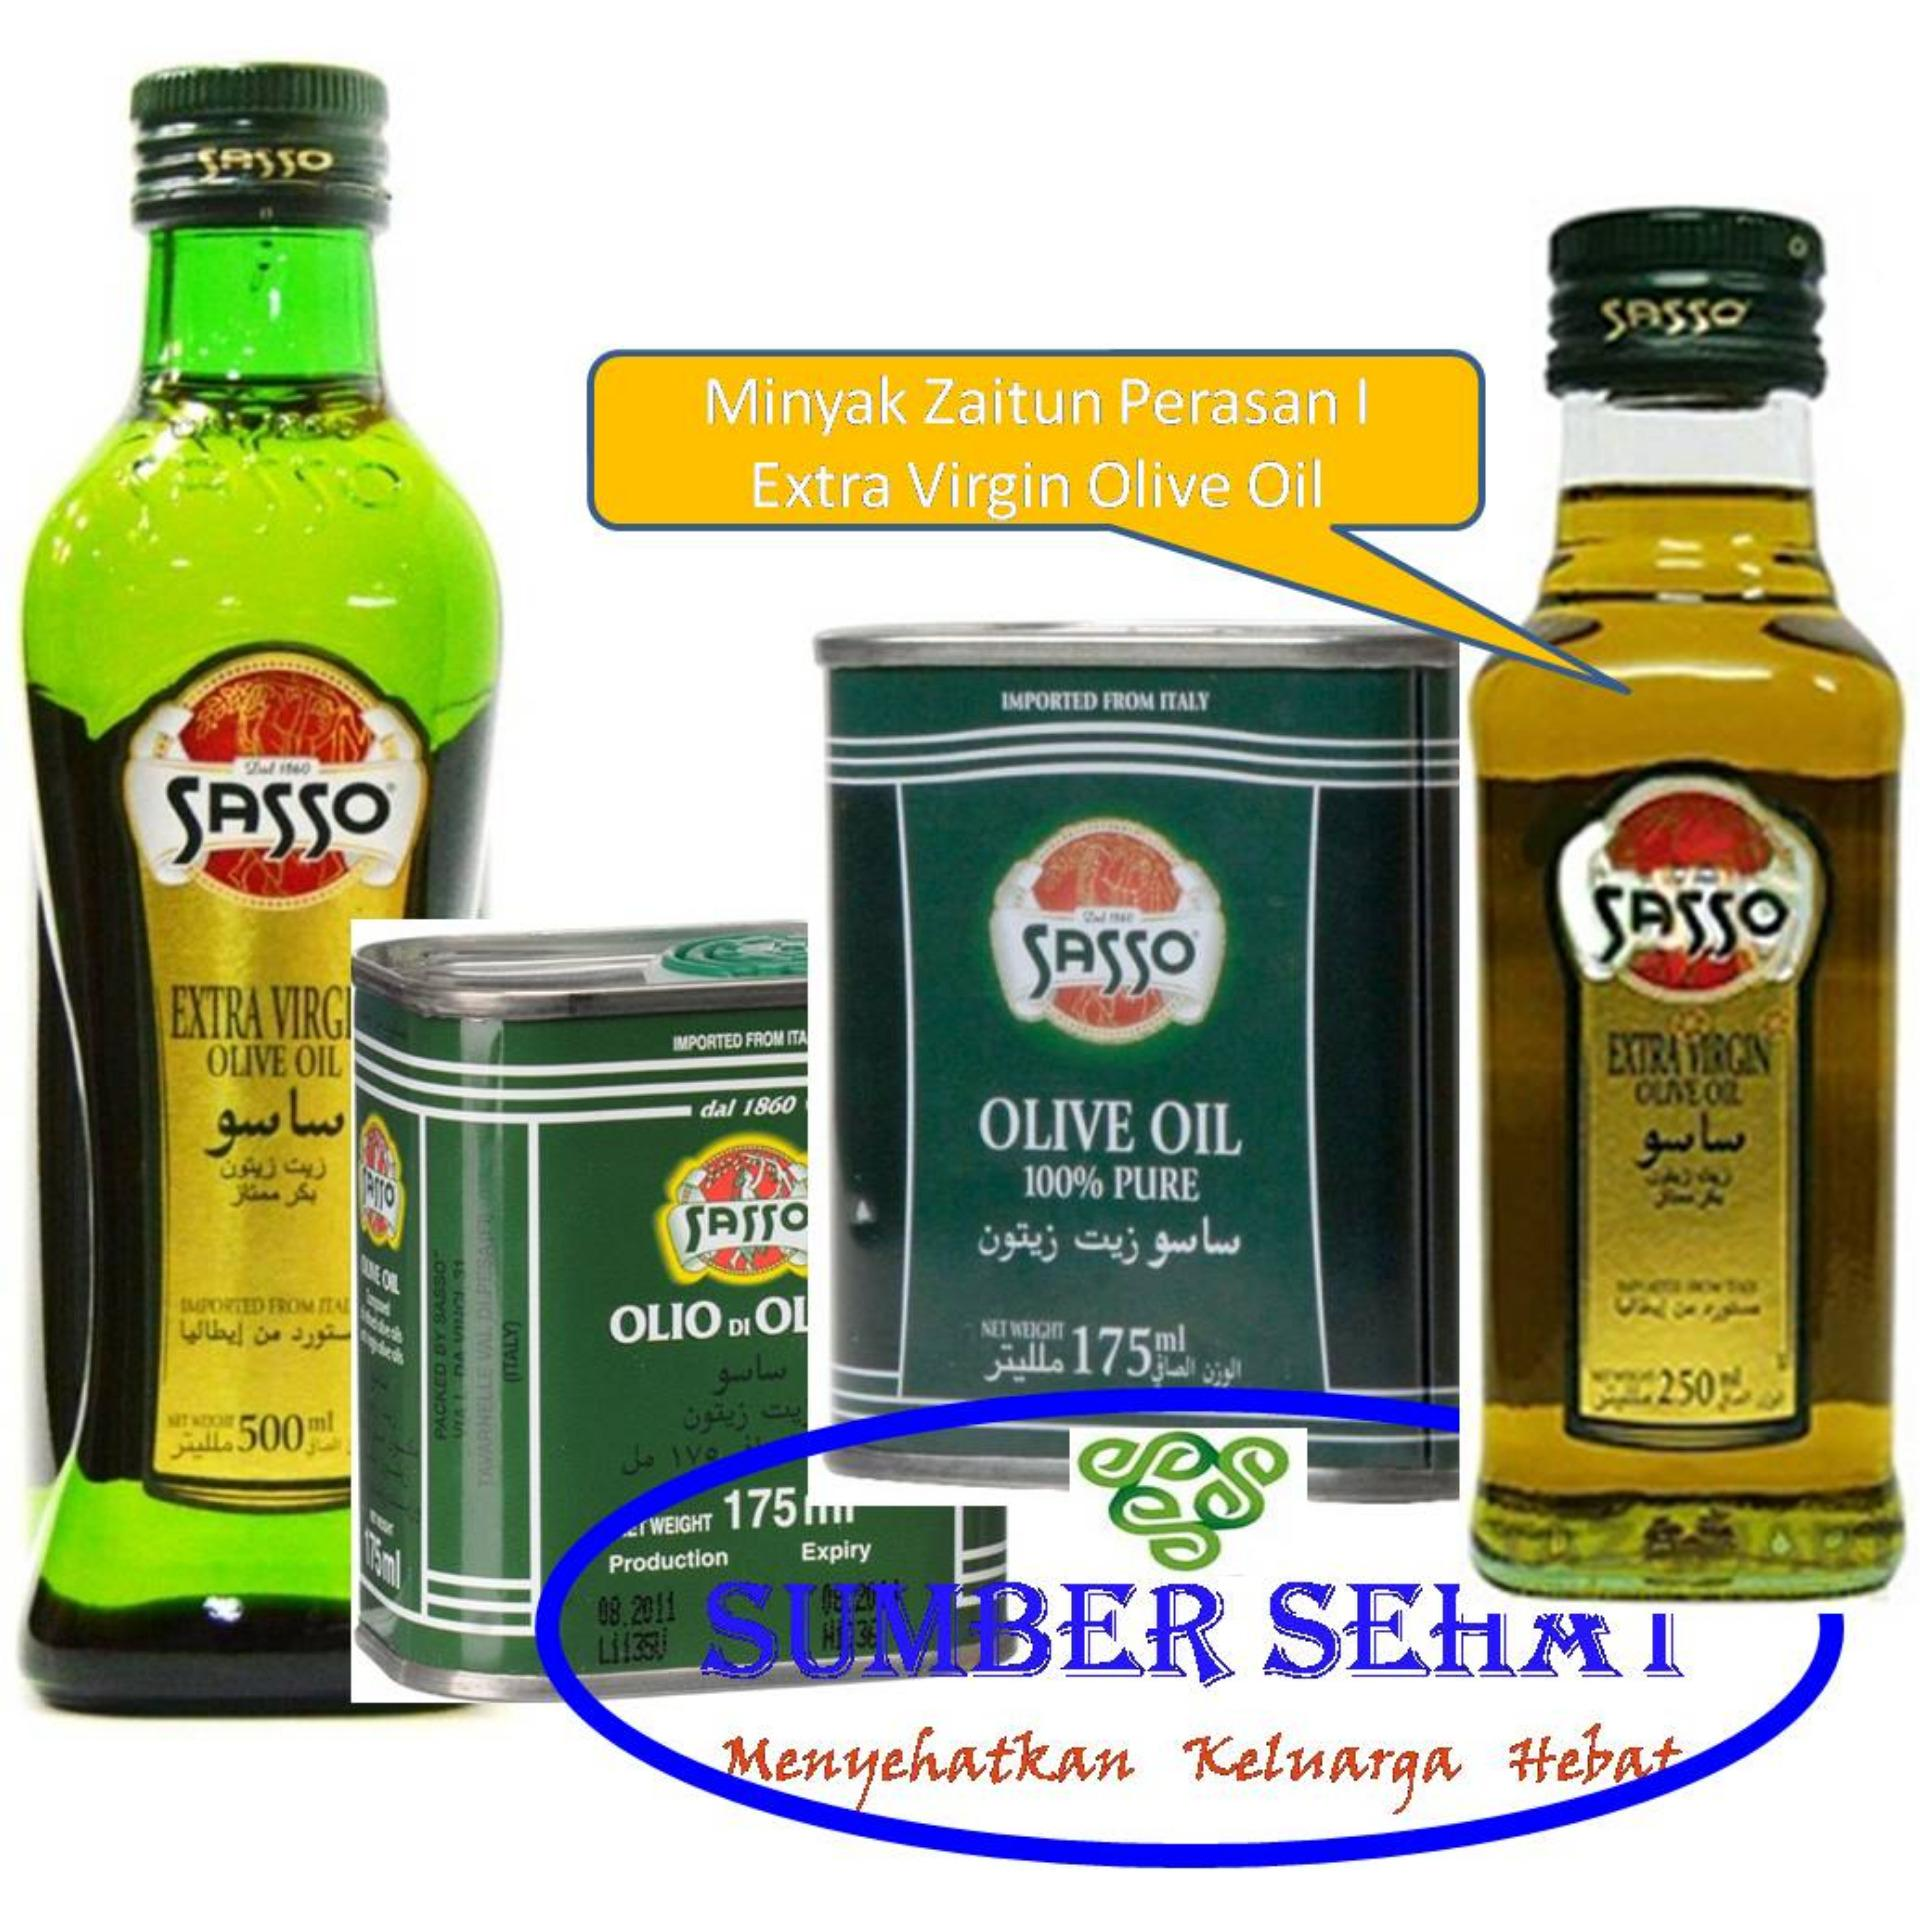 Review Extra Virgin Olive Oil Sasso 250 Ml Original Indonesia